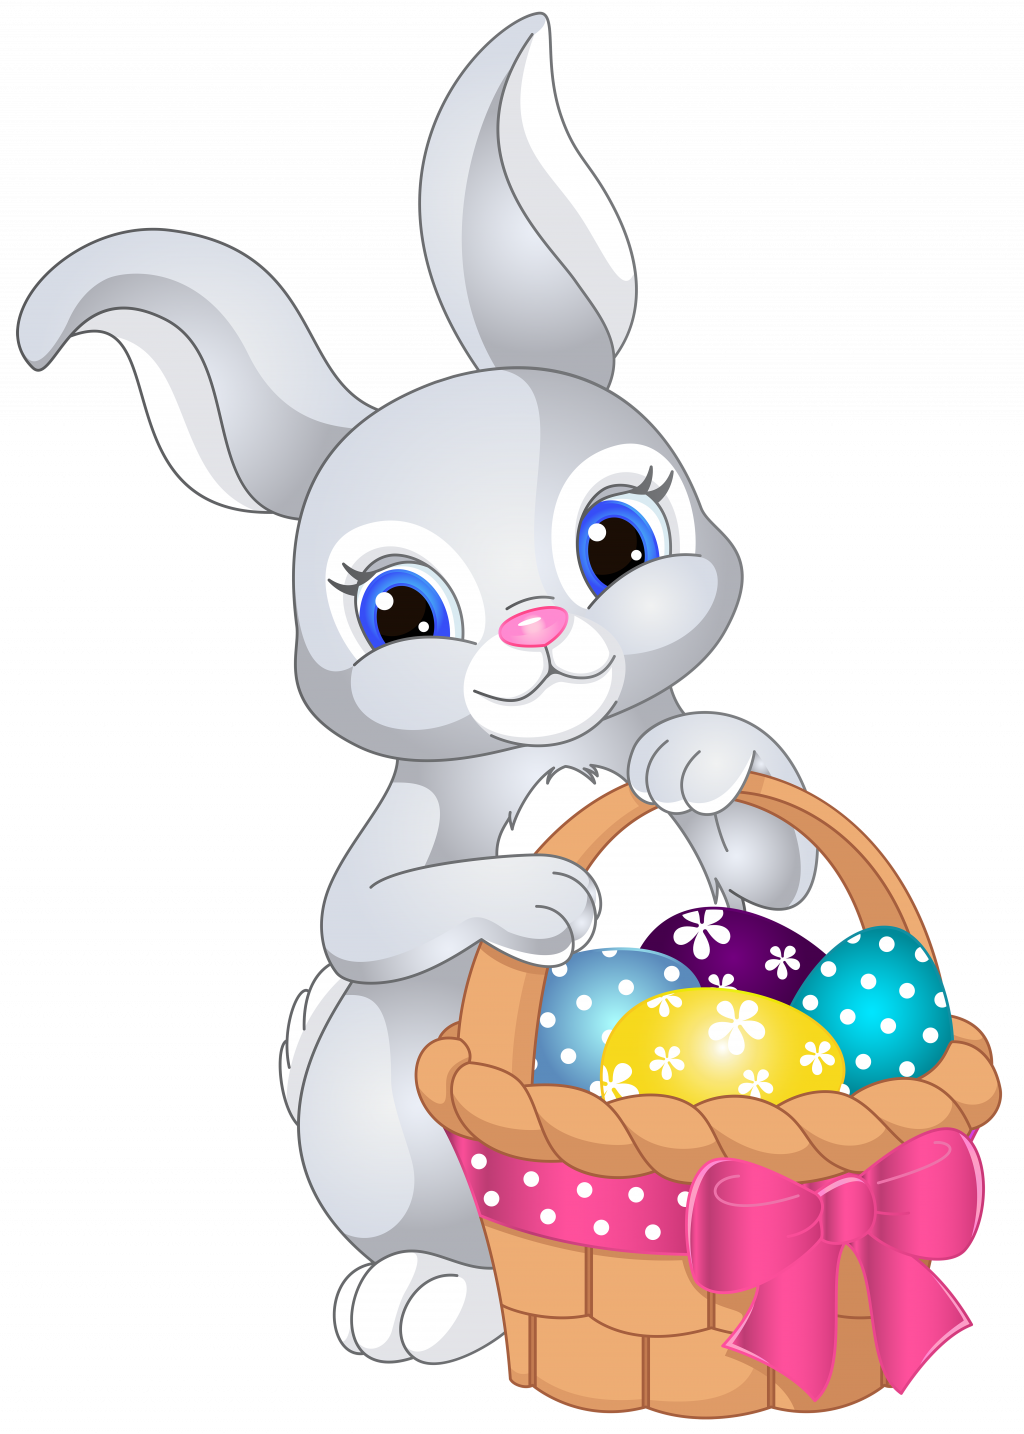 Christian group uncategorized free. Pawprint clipart easter bunny